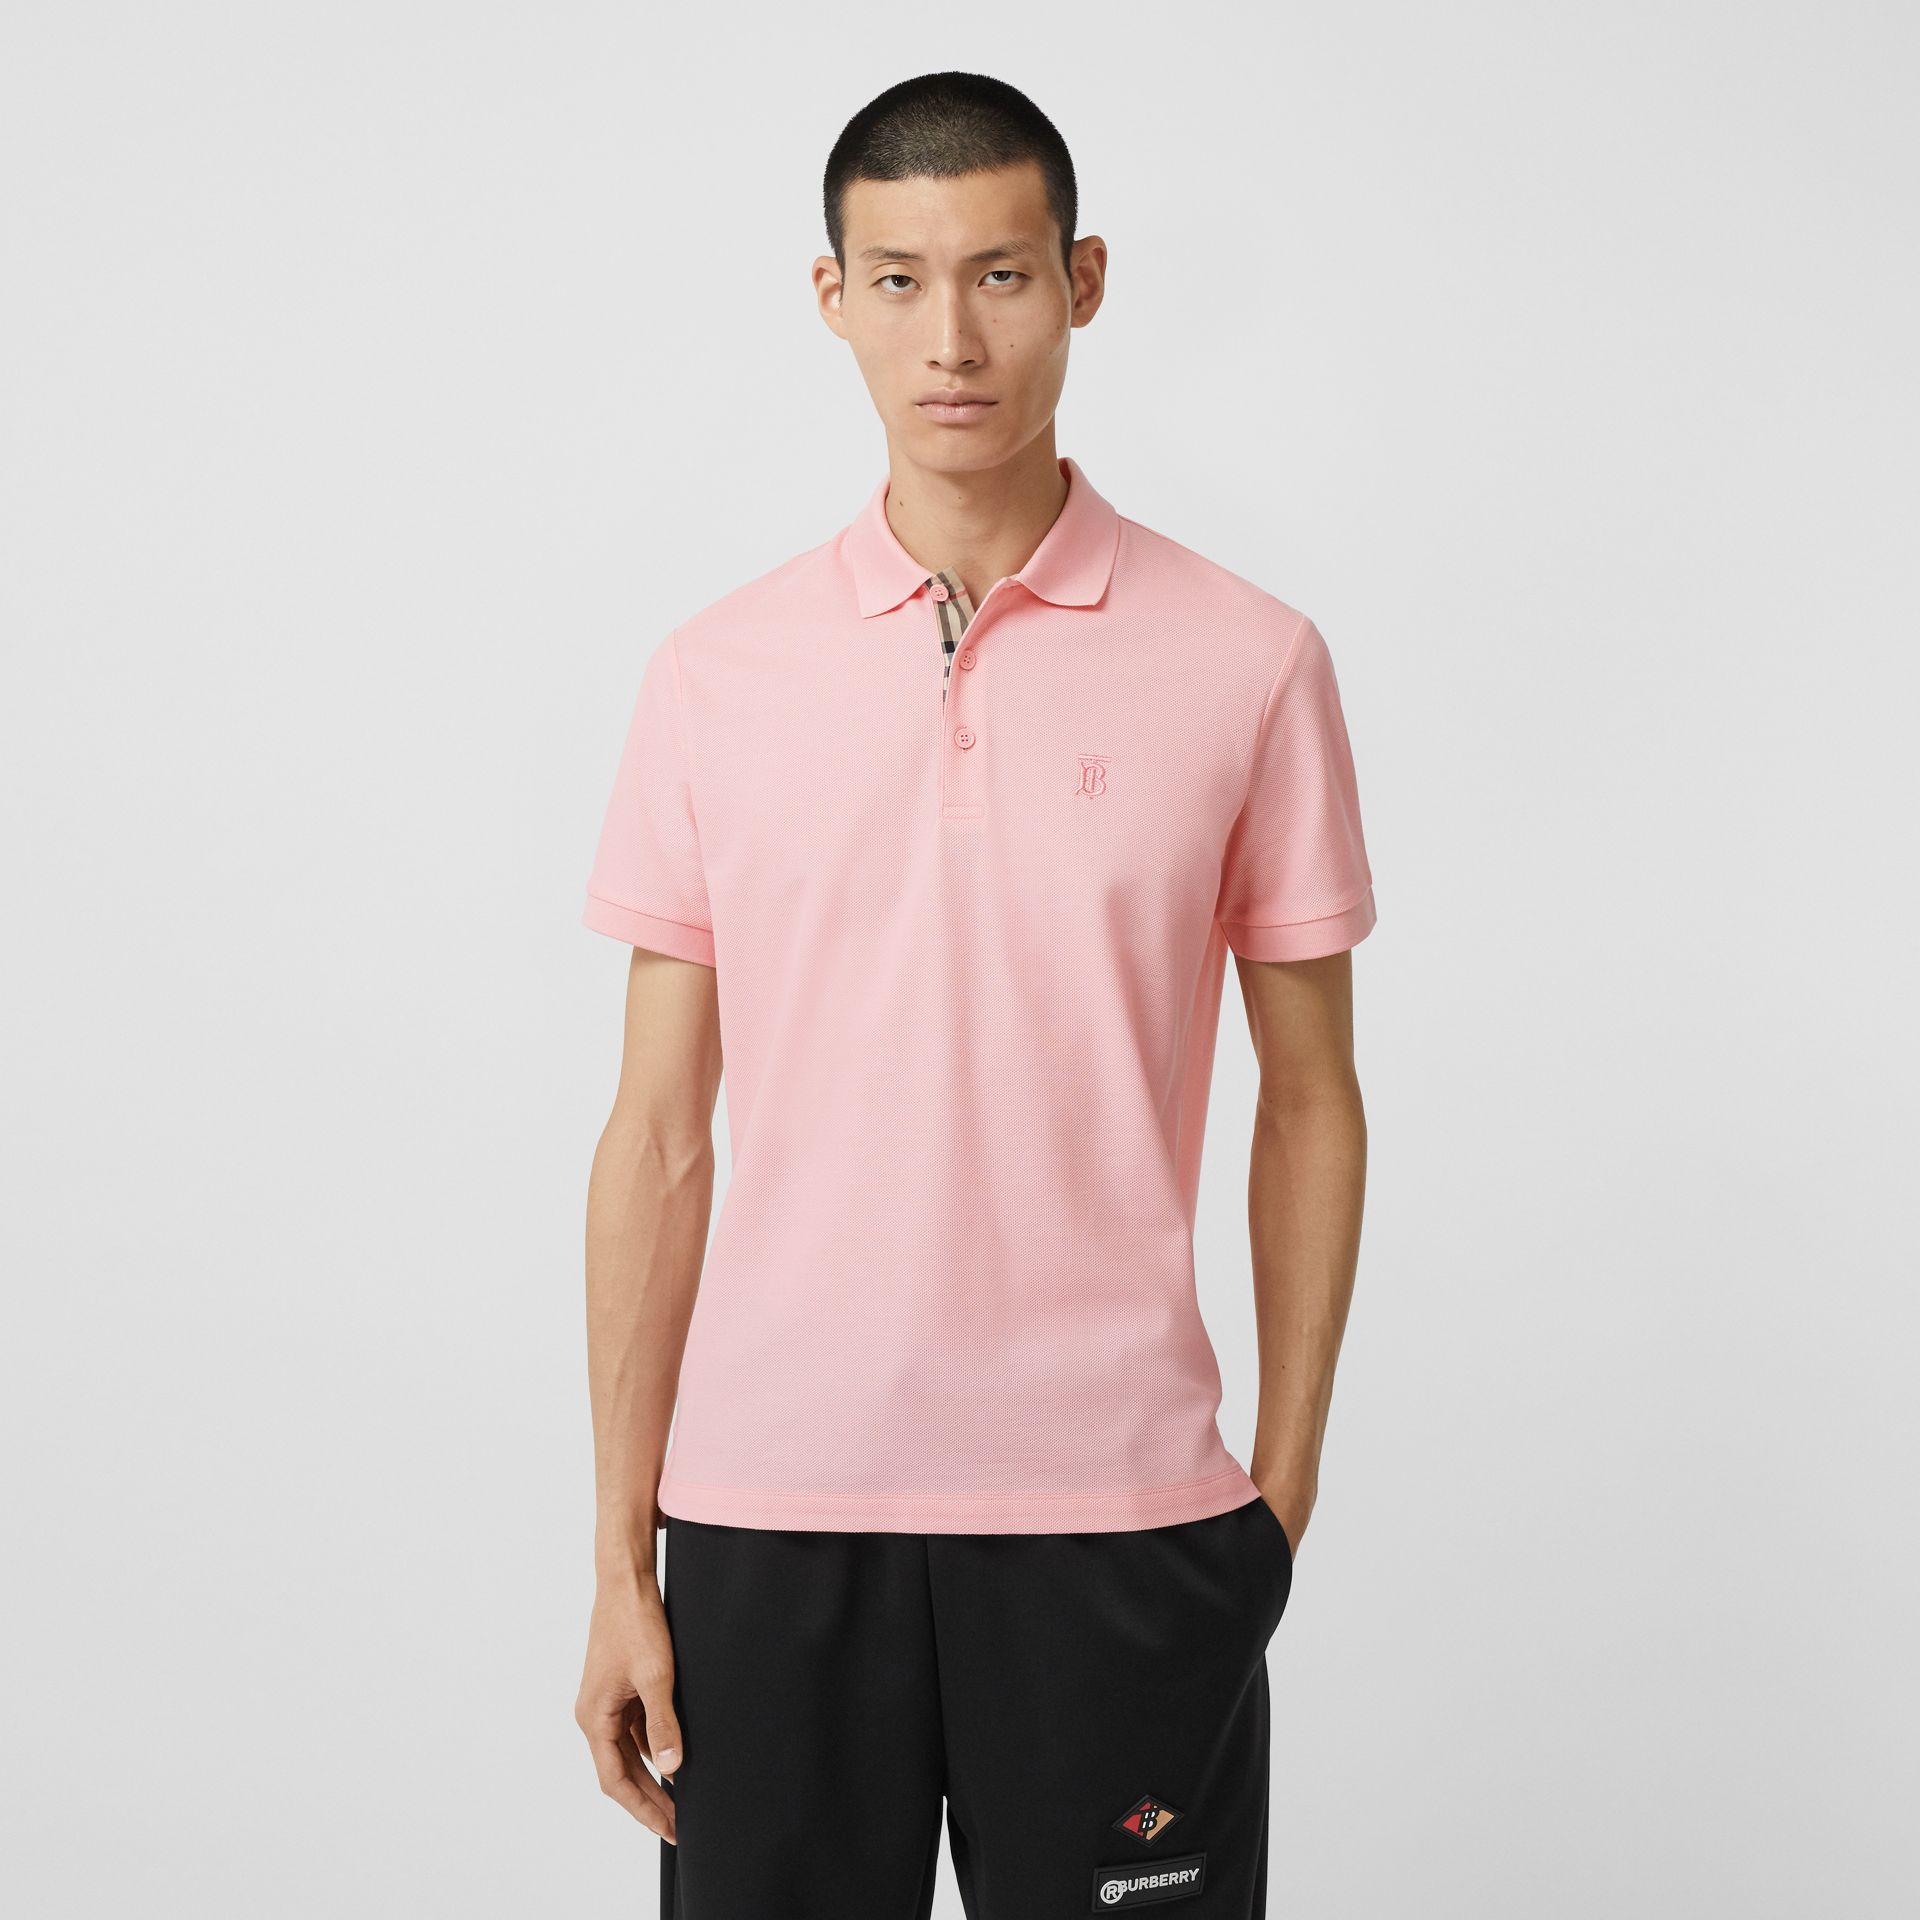 Monogram Motif Cotton Piqué Polo Shirt in Candy Pink - Men | Burberry Australia - gallery image 4